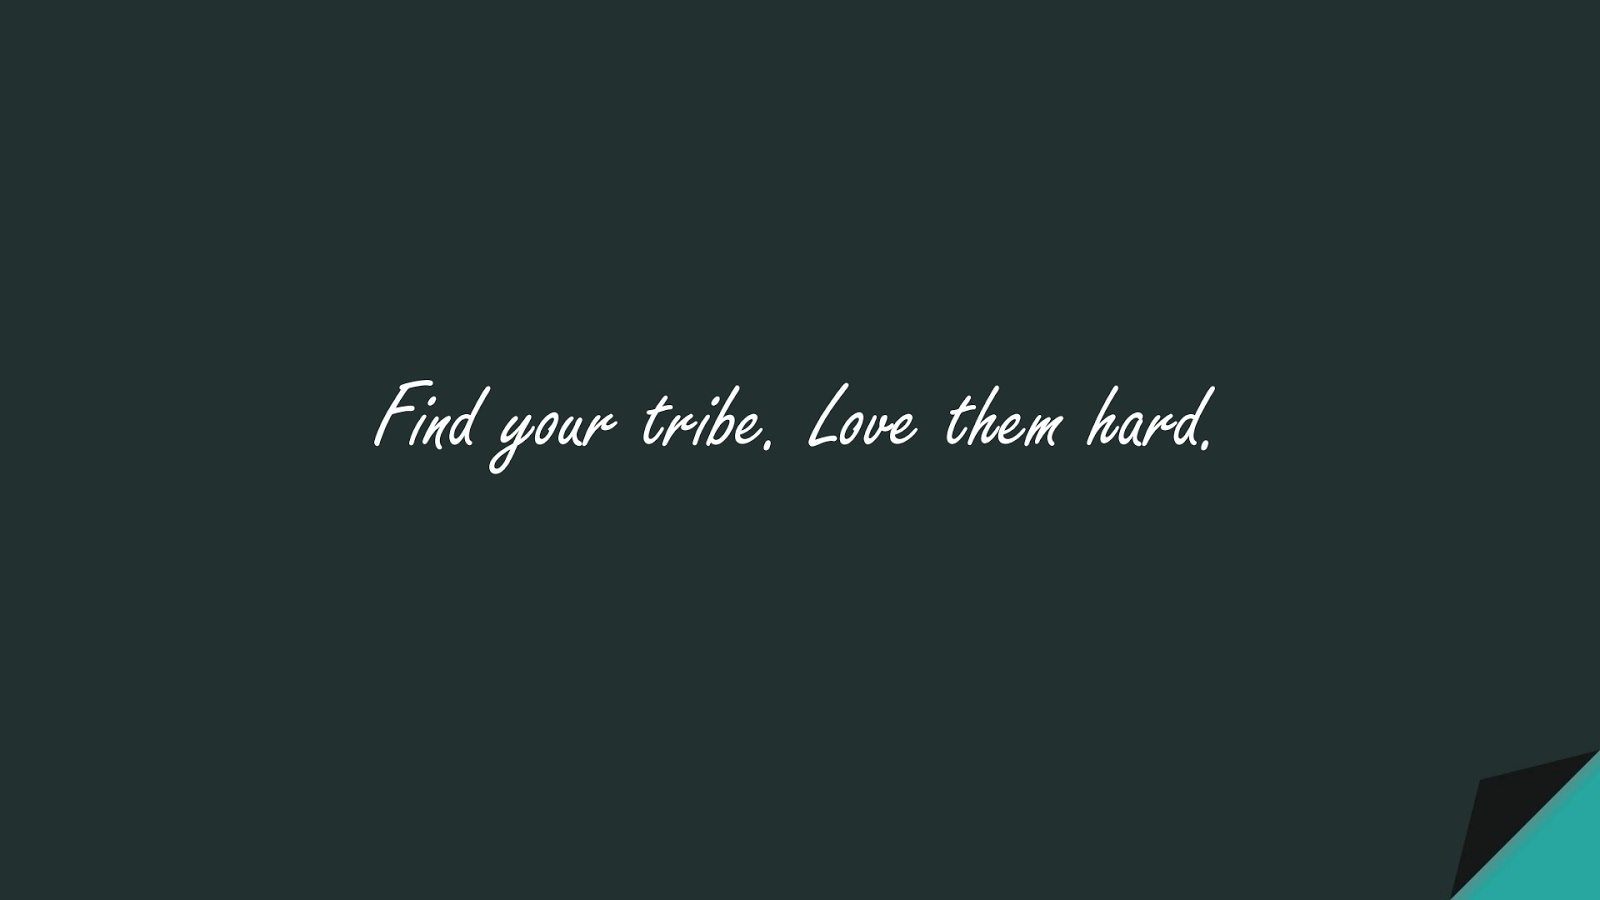 Find your tribe. Love them hard.FALSE